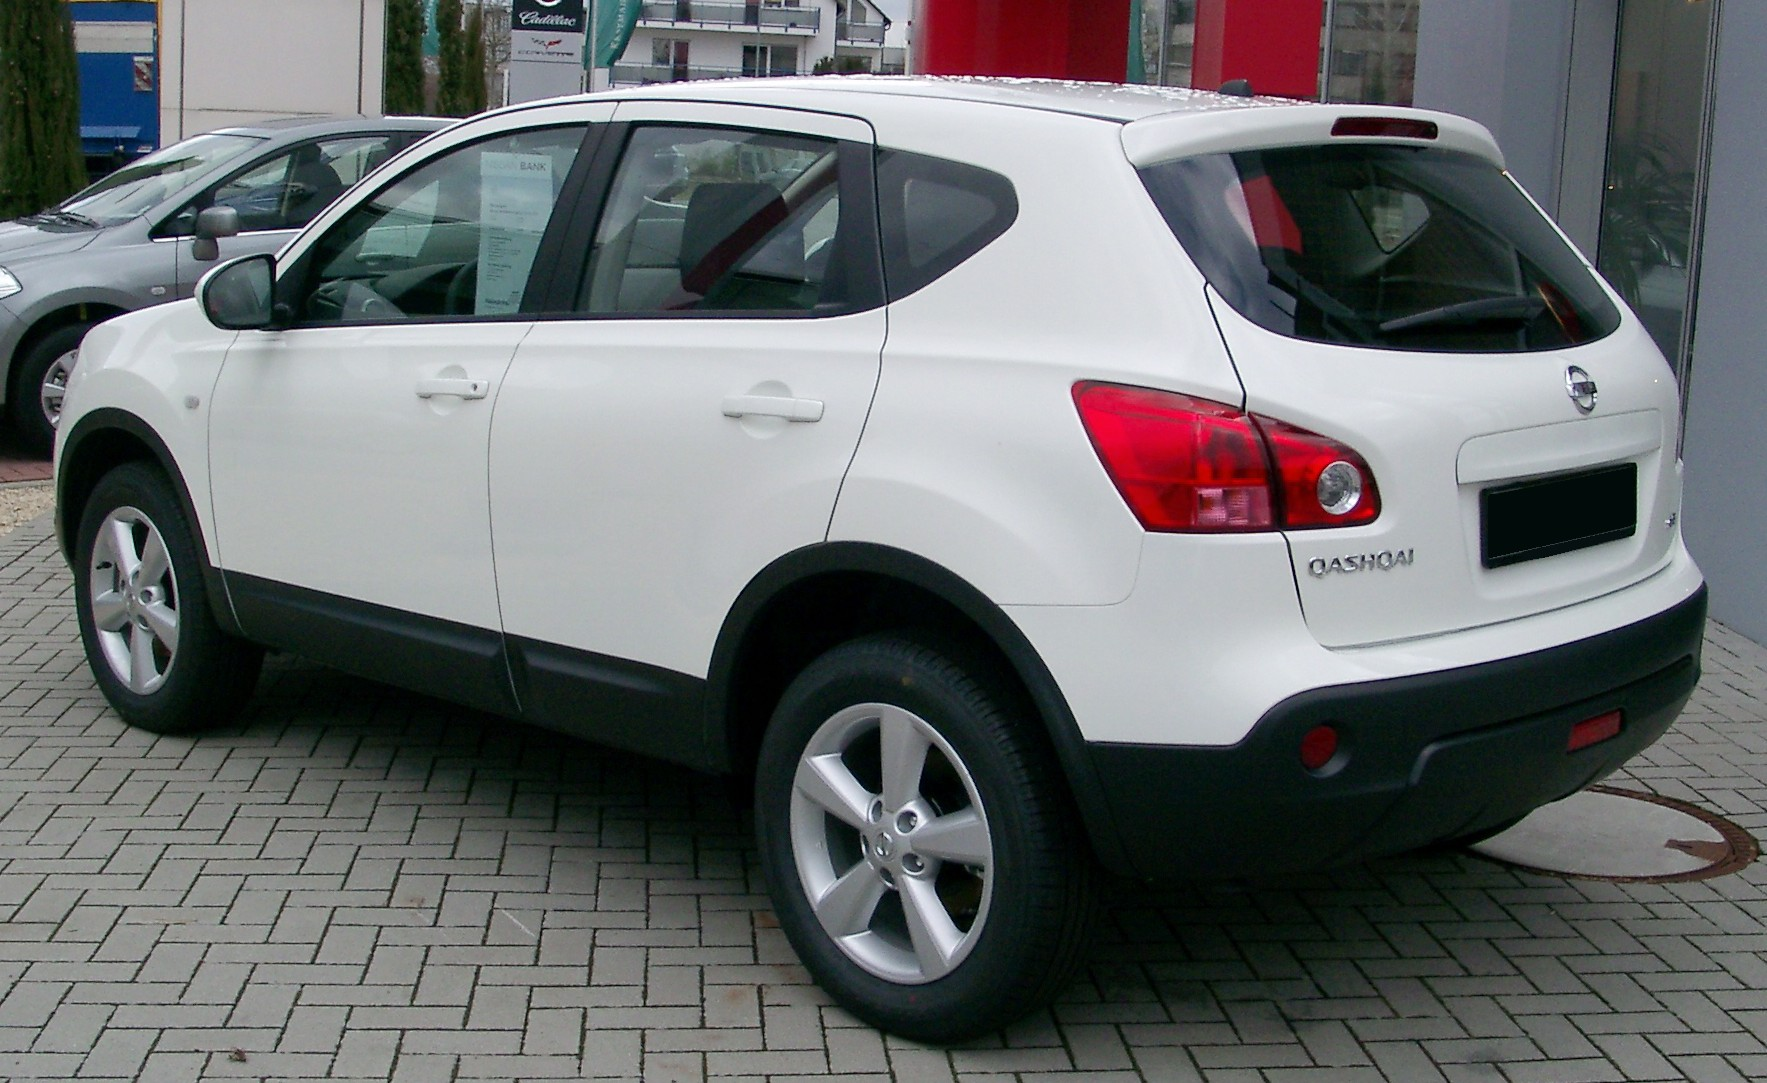 http://upload.wikimedia.org/wikipedia/commons/8/87/Nissan_Qashqai_rear_20080301.jpg